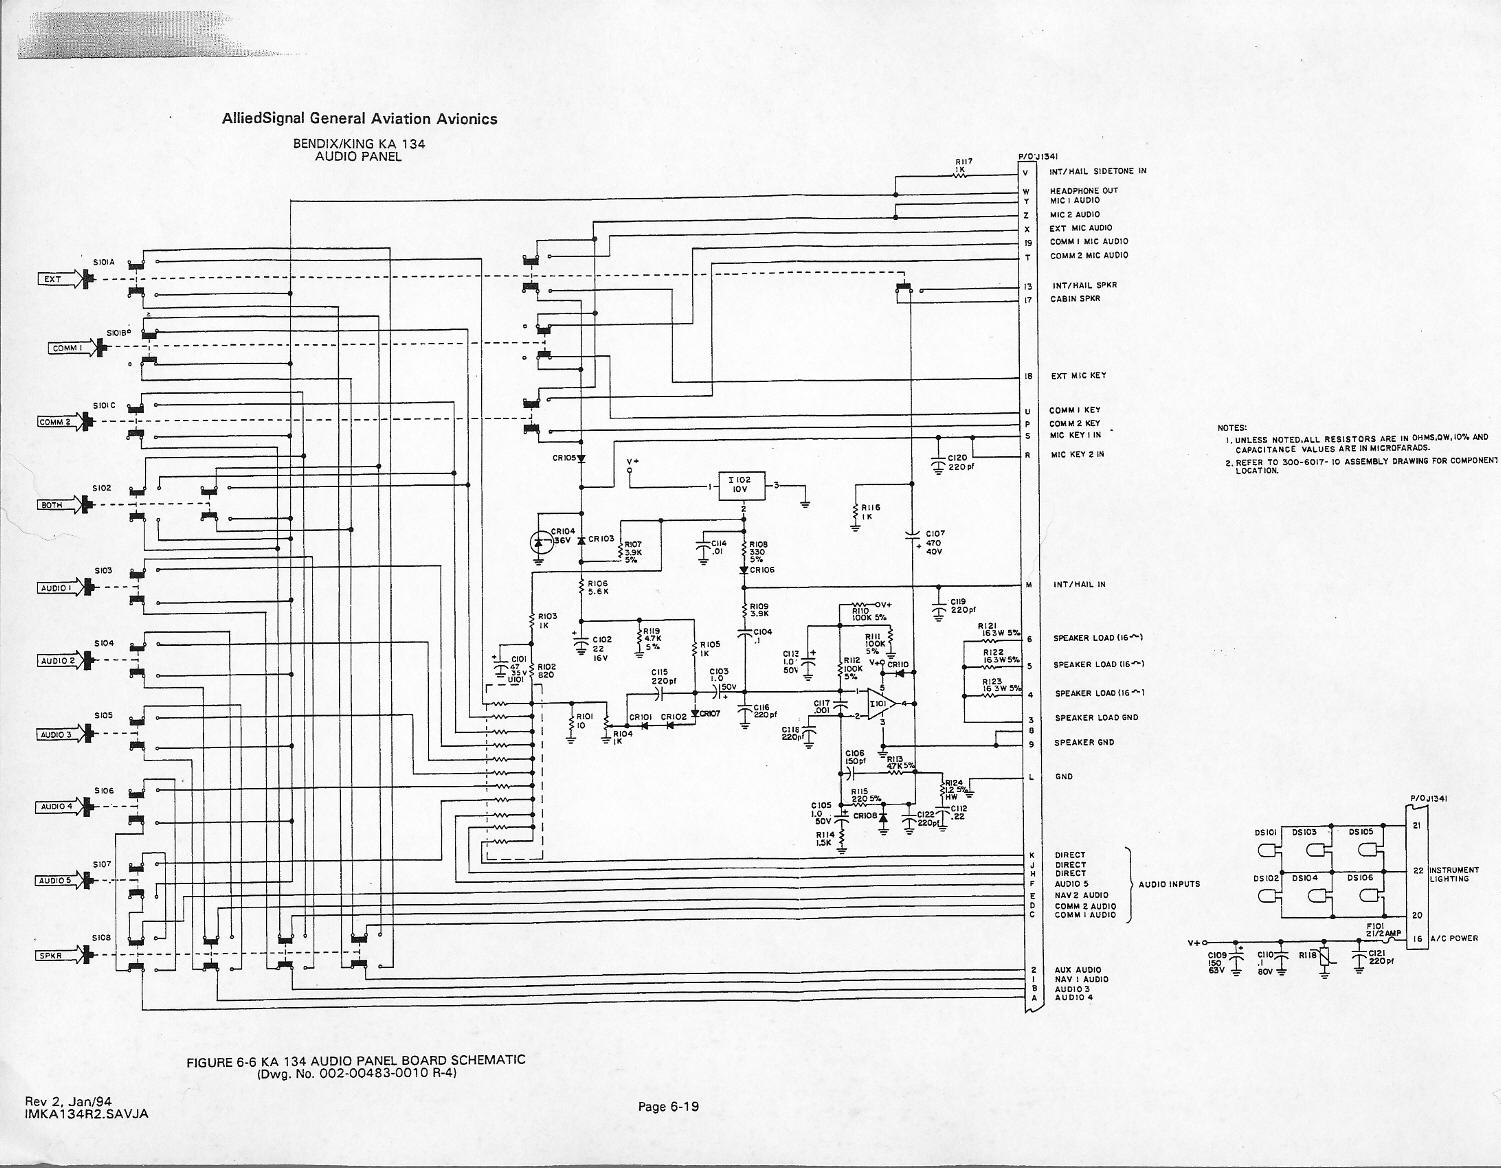 ka134_r4 first flight prep king ka 134 audio panel wiring diagram at reclaimingppi.co